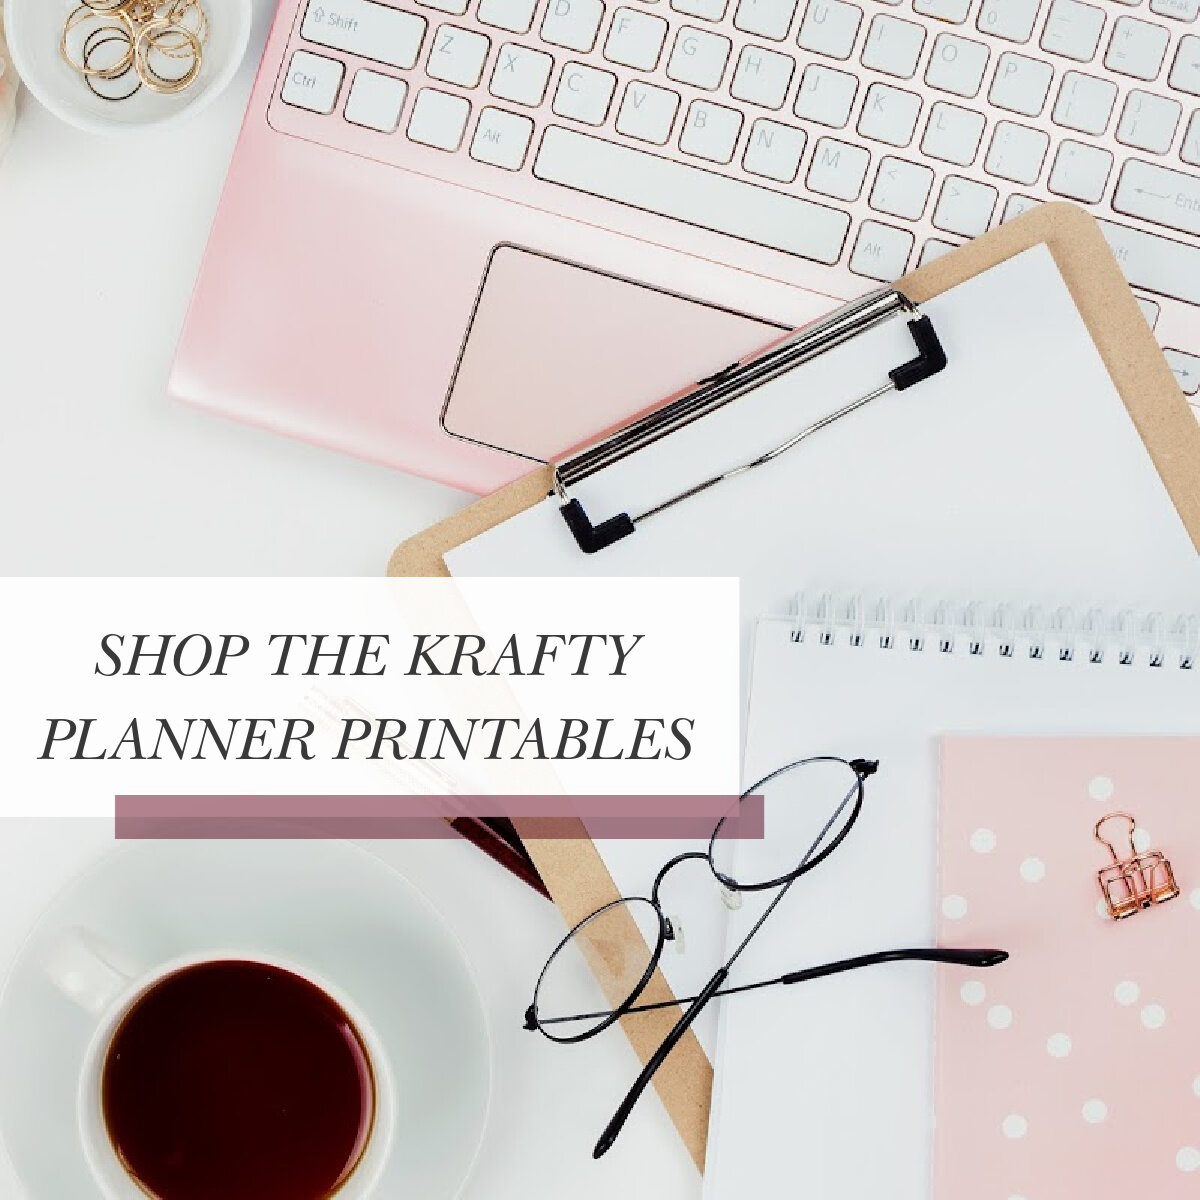 Shop the Krafty Planner Printables.jpg